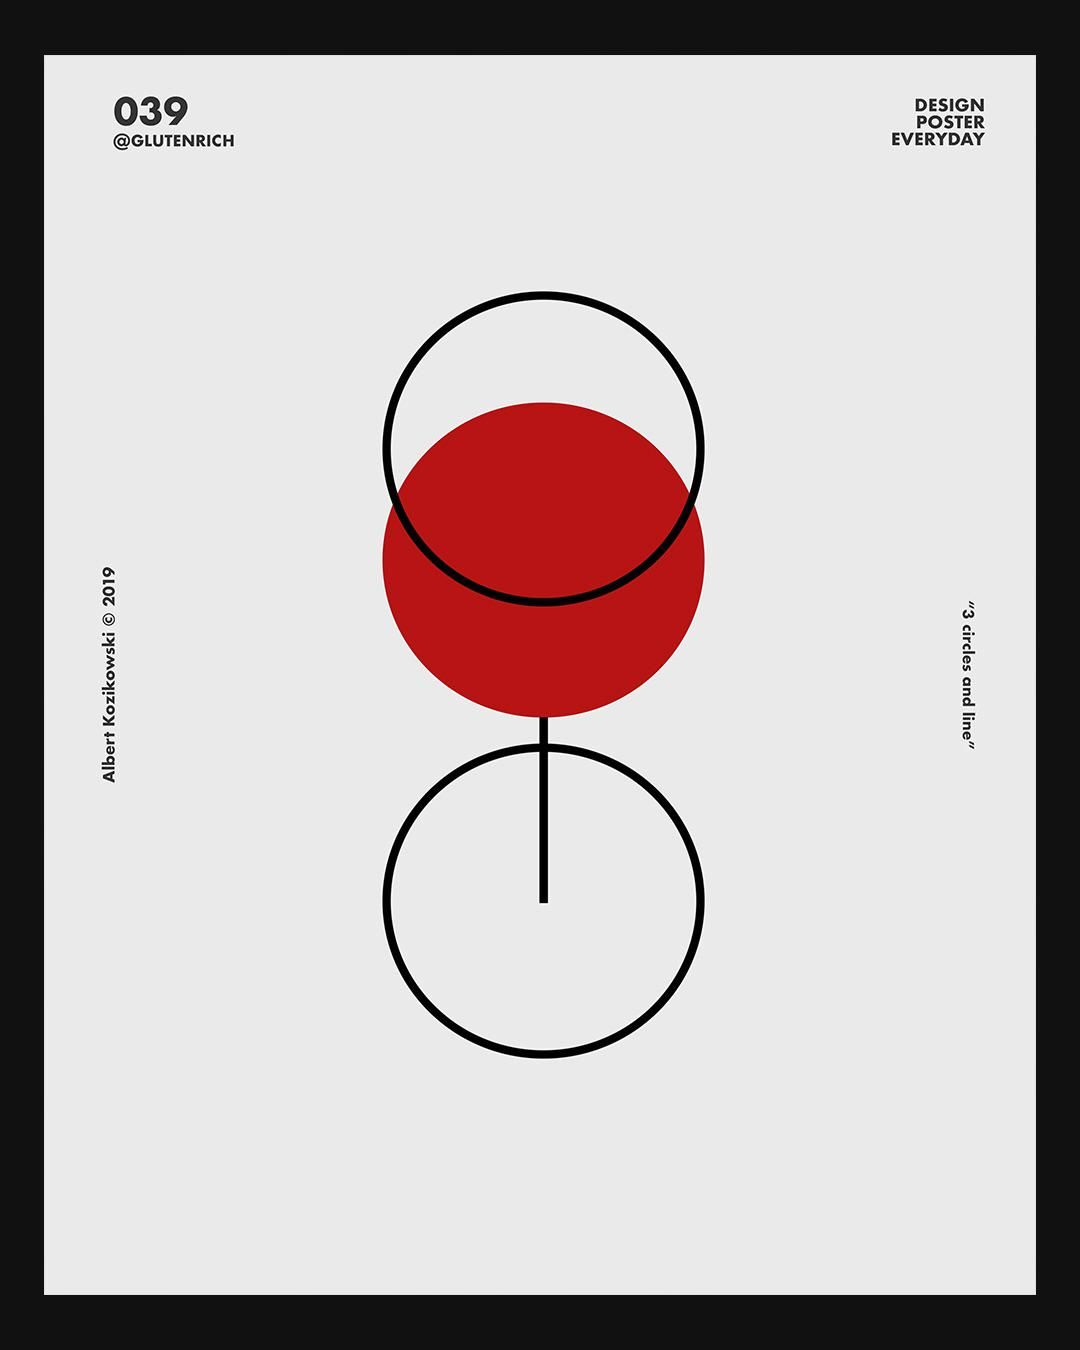 Red Wine Poster Inspired By Famous Alan Flercher Logo Designer Graphic Inspiration Wine Logo Design Circle Graphic Design Graphic Design Typography Poster